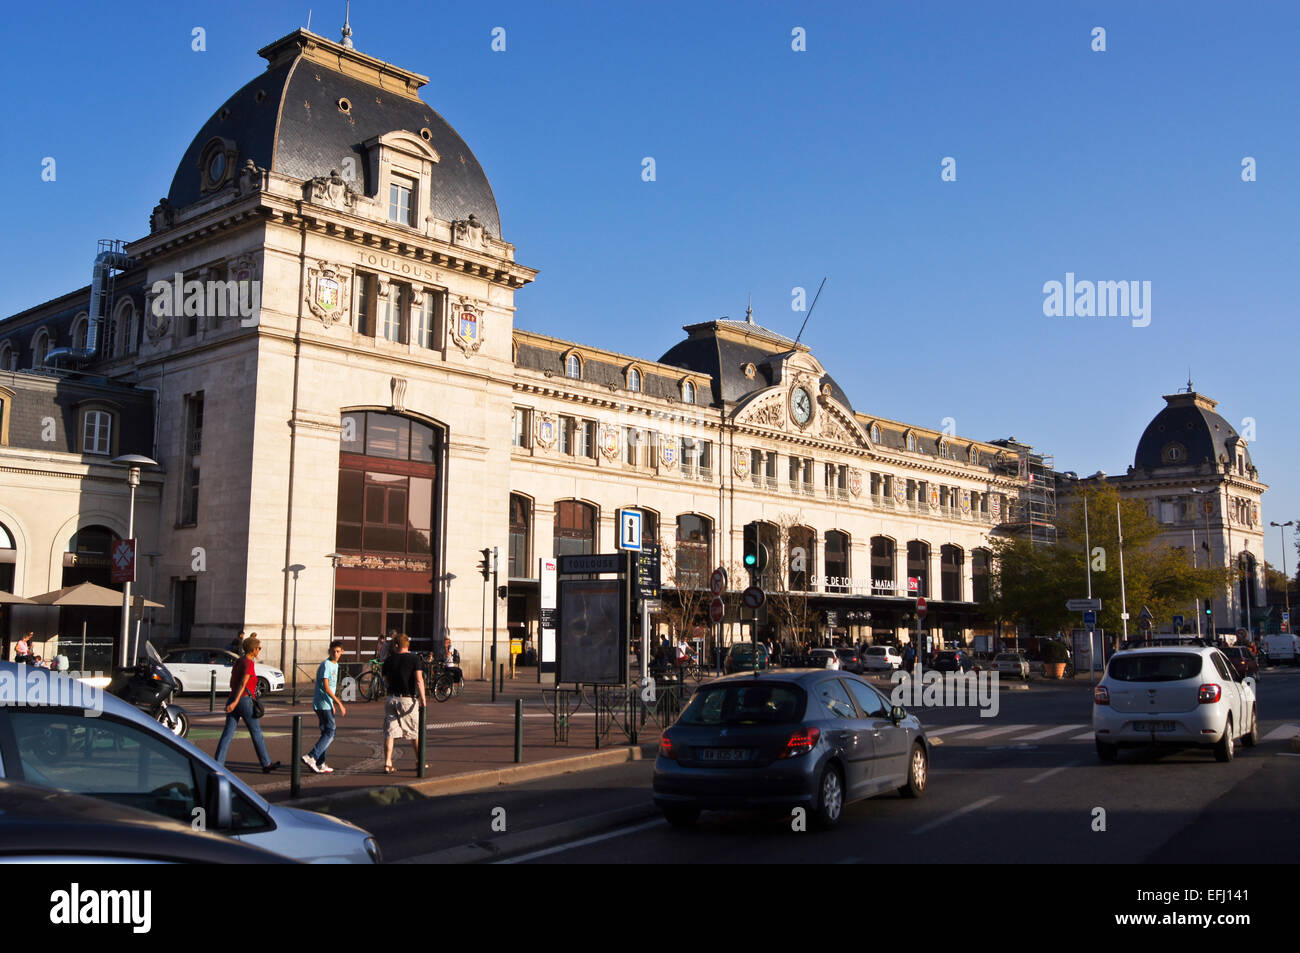 Matabiau railway station building,  1903-05, Toulouse, Haute-Garonne, France Stock Photo